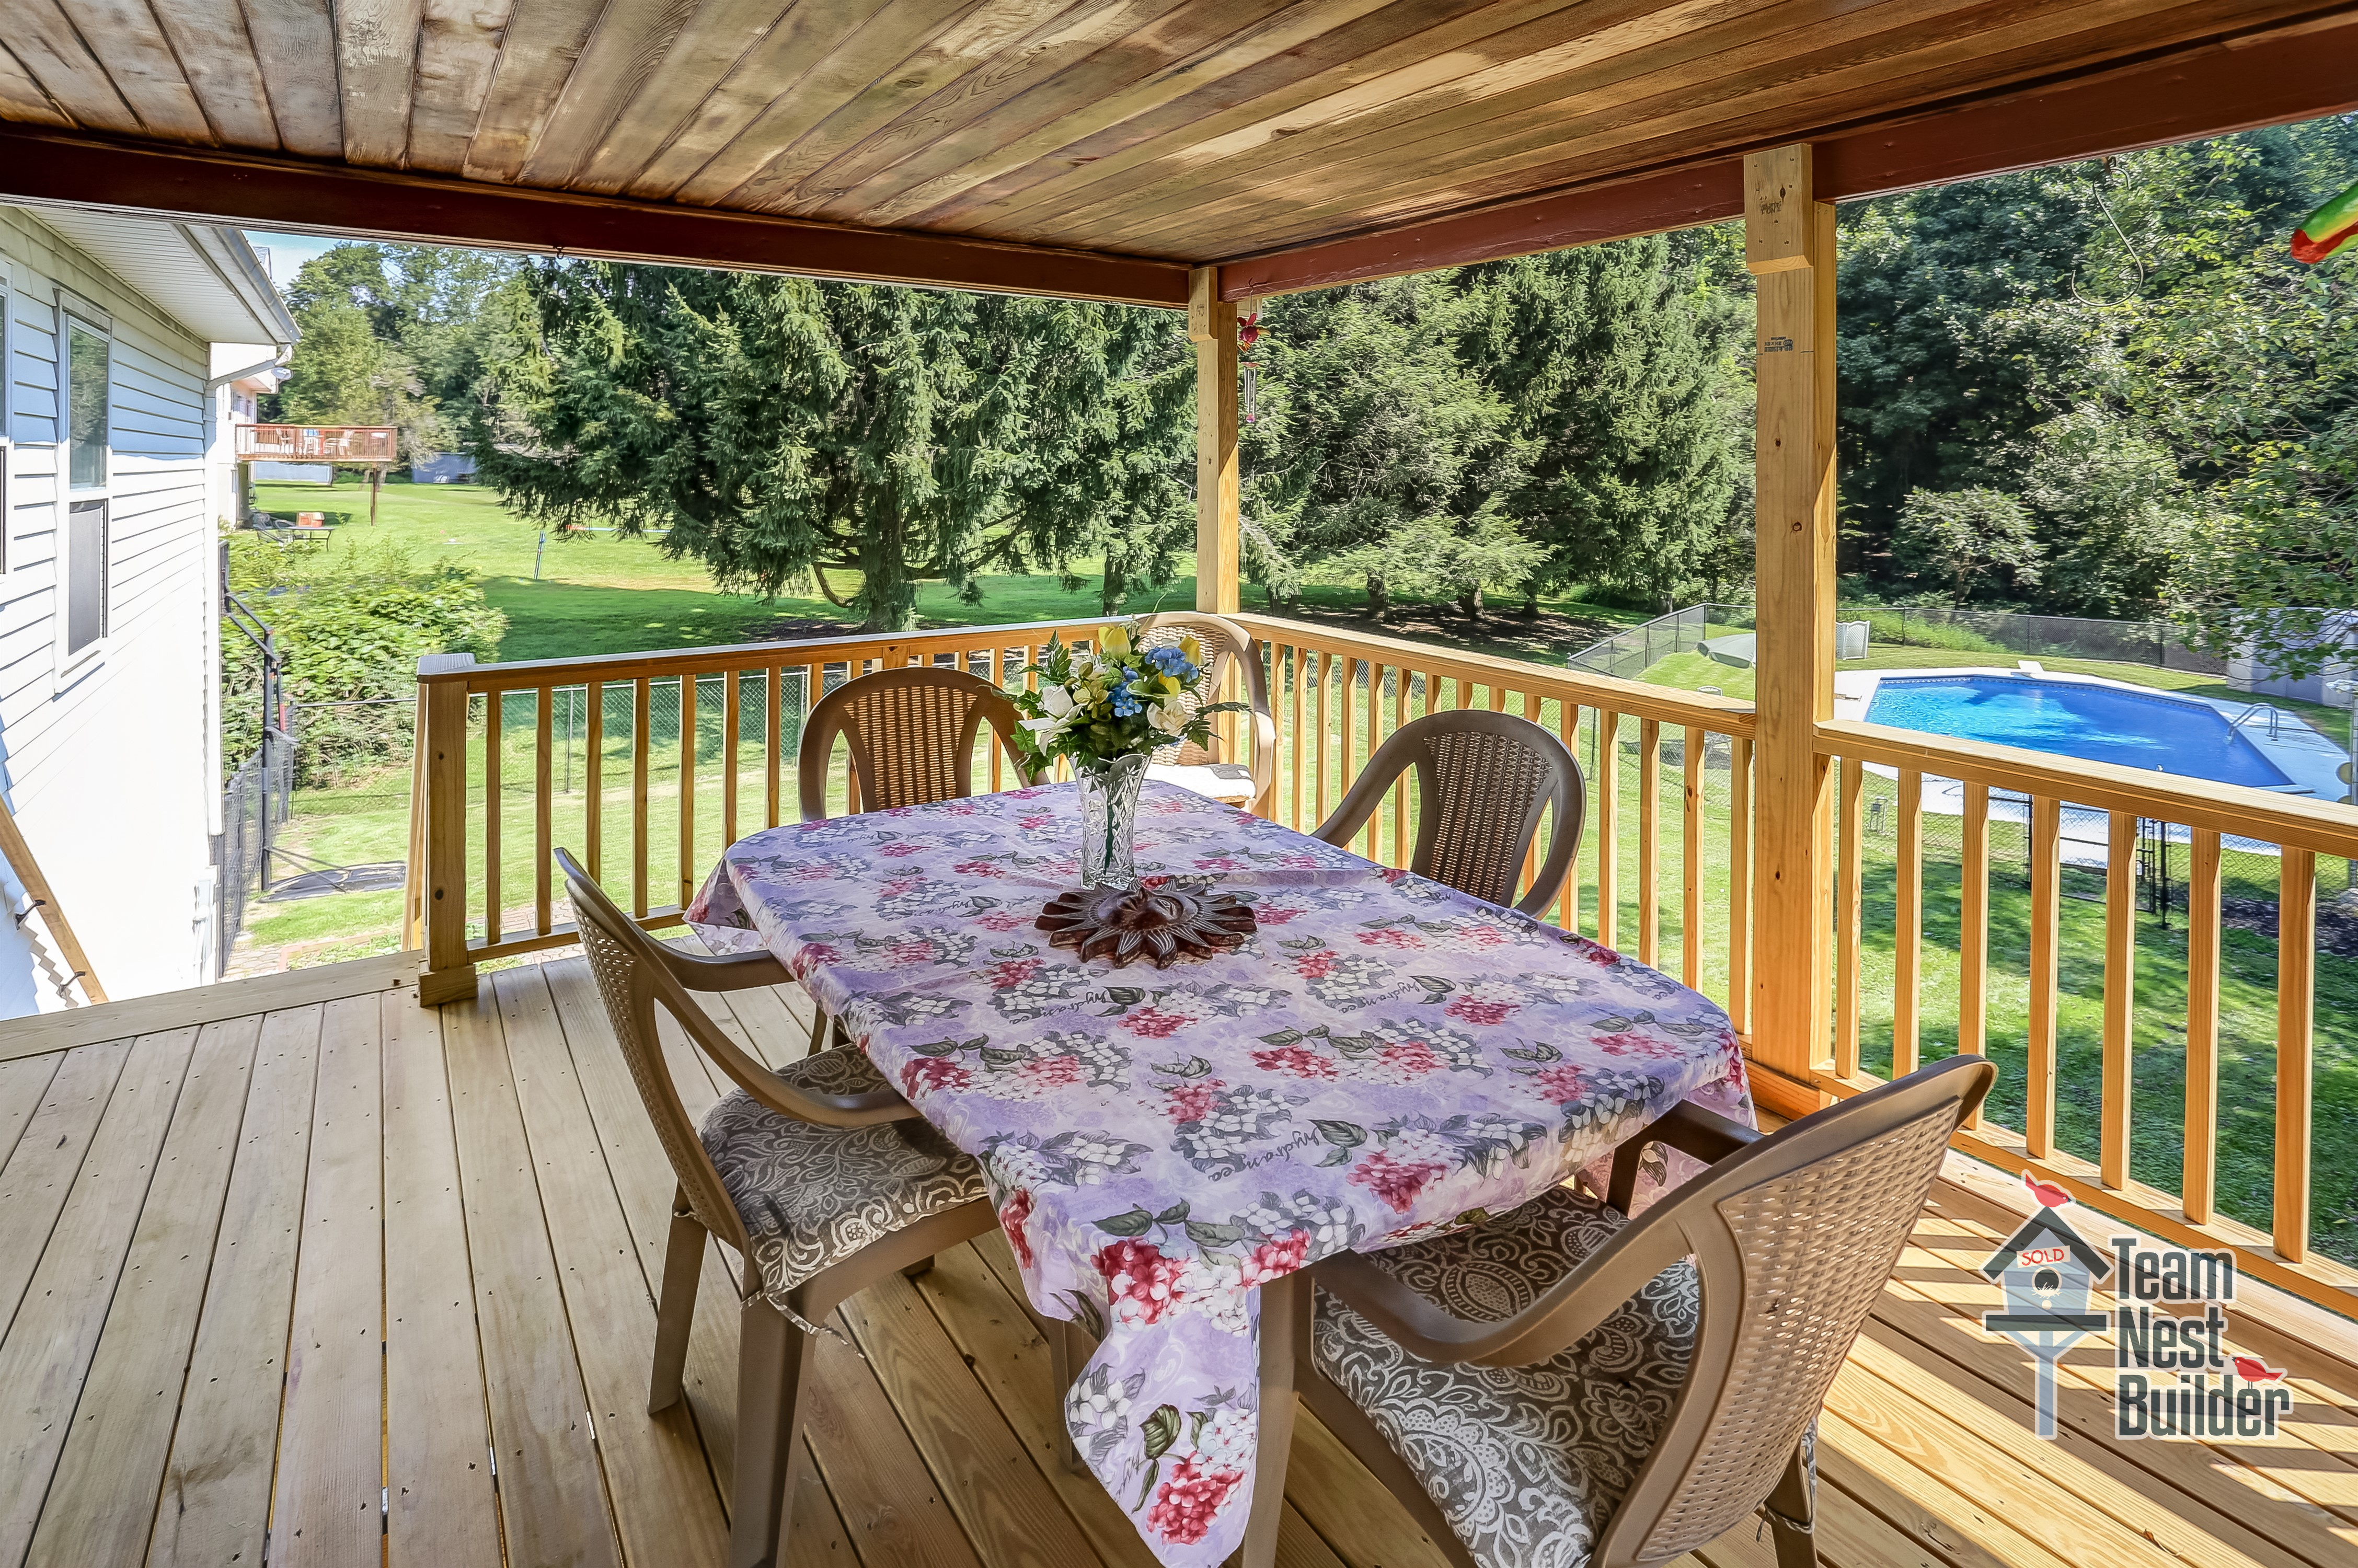 Dine and entertain on the covered deck